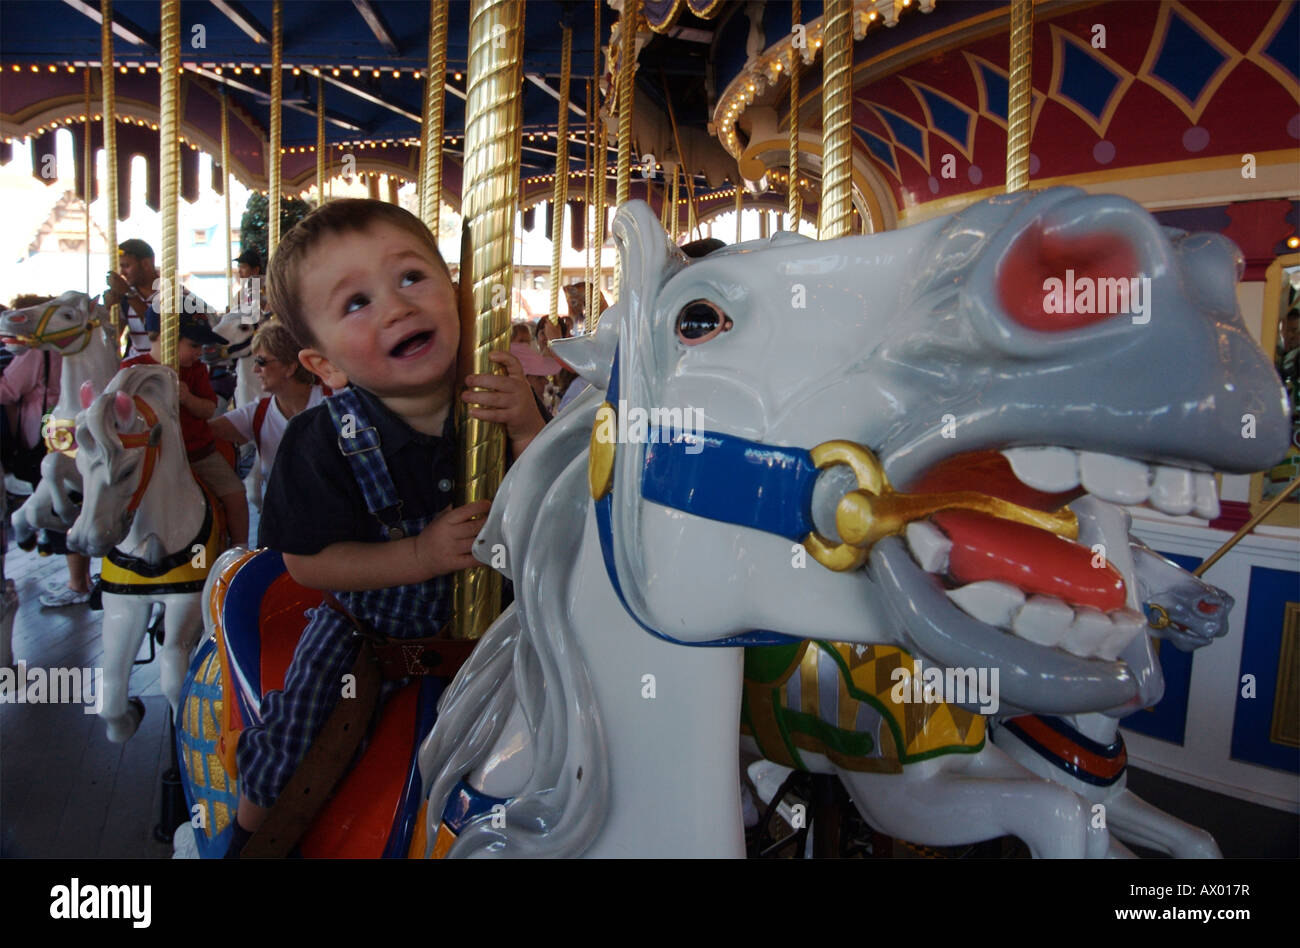 One year old toddler on a merry-go-round, riding a horse, at ...